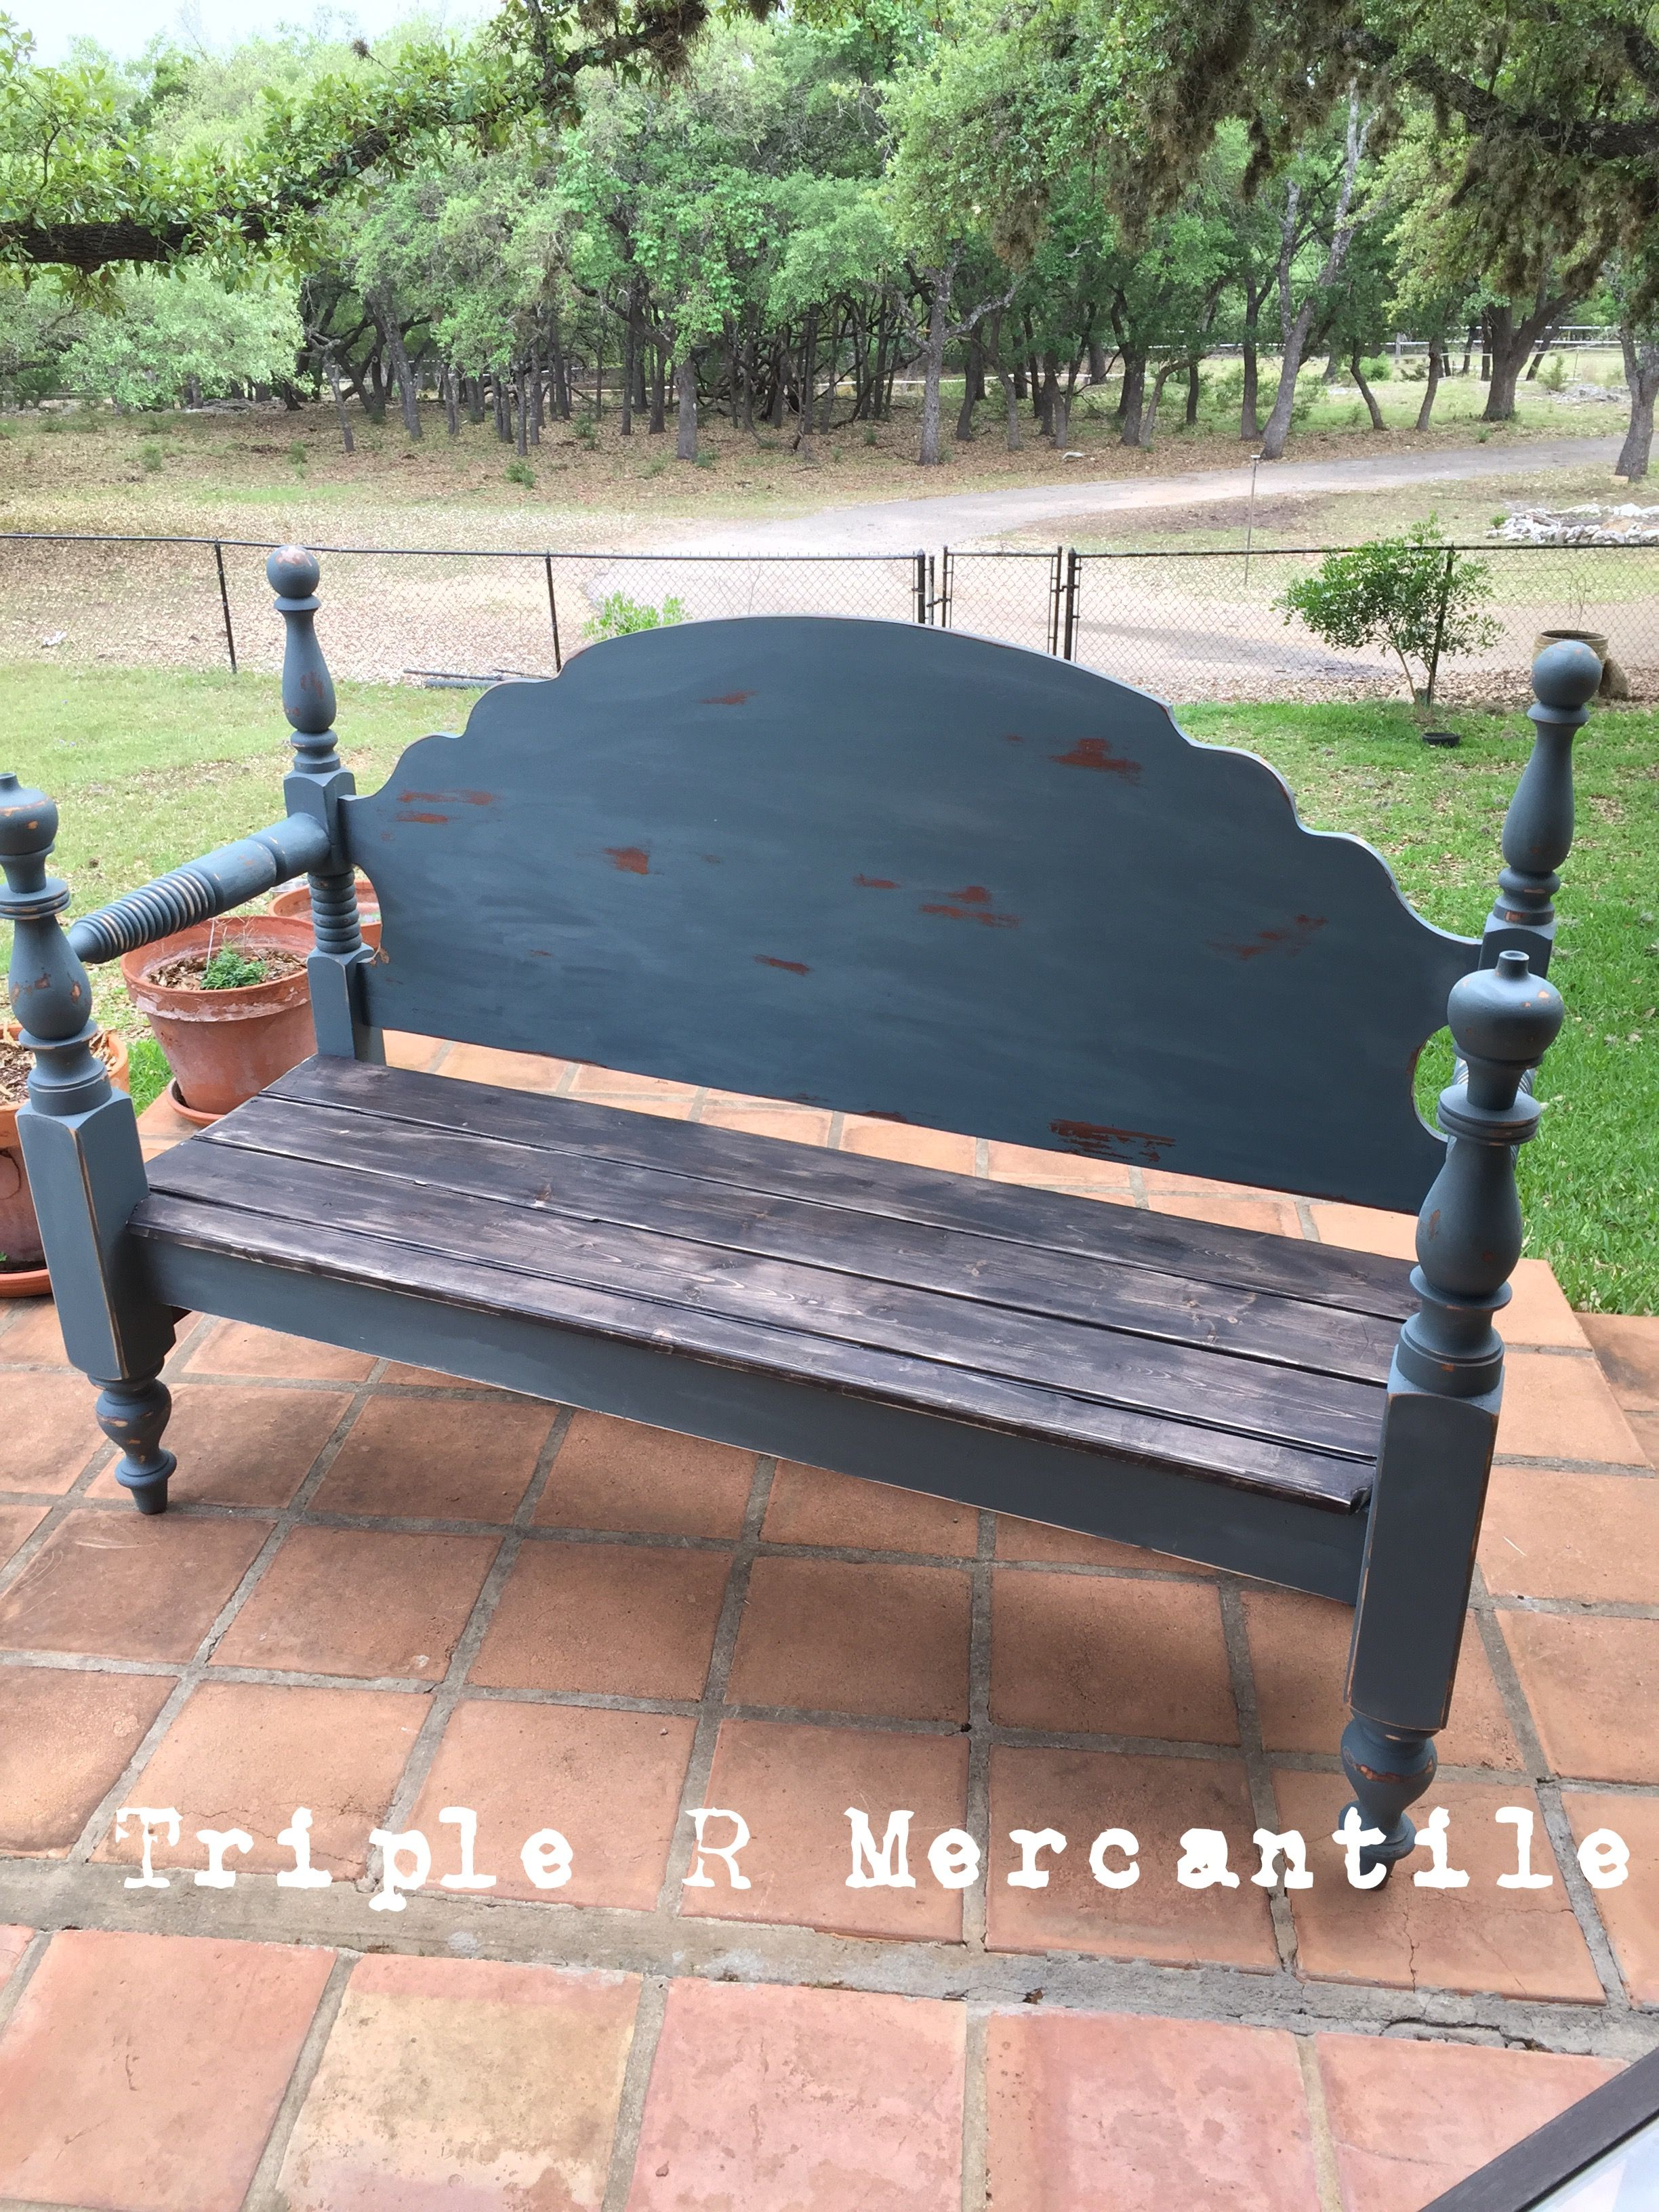 Queen sized headboard bench painted in Stormy Seas with